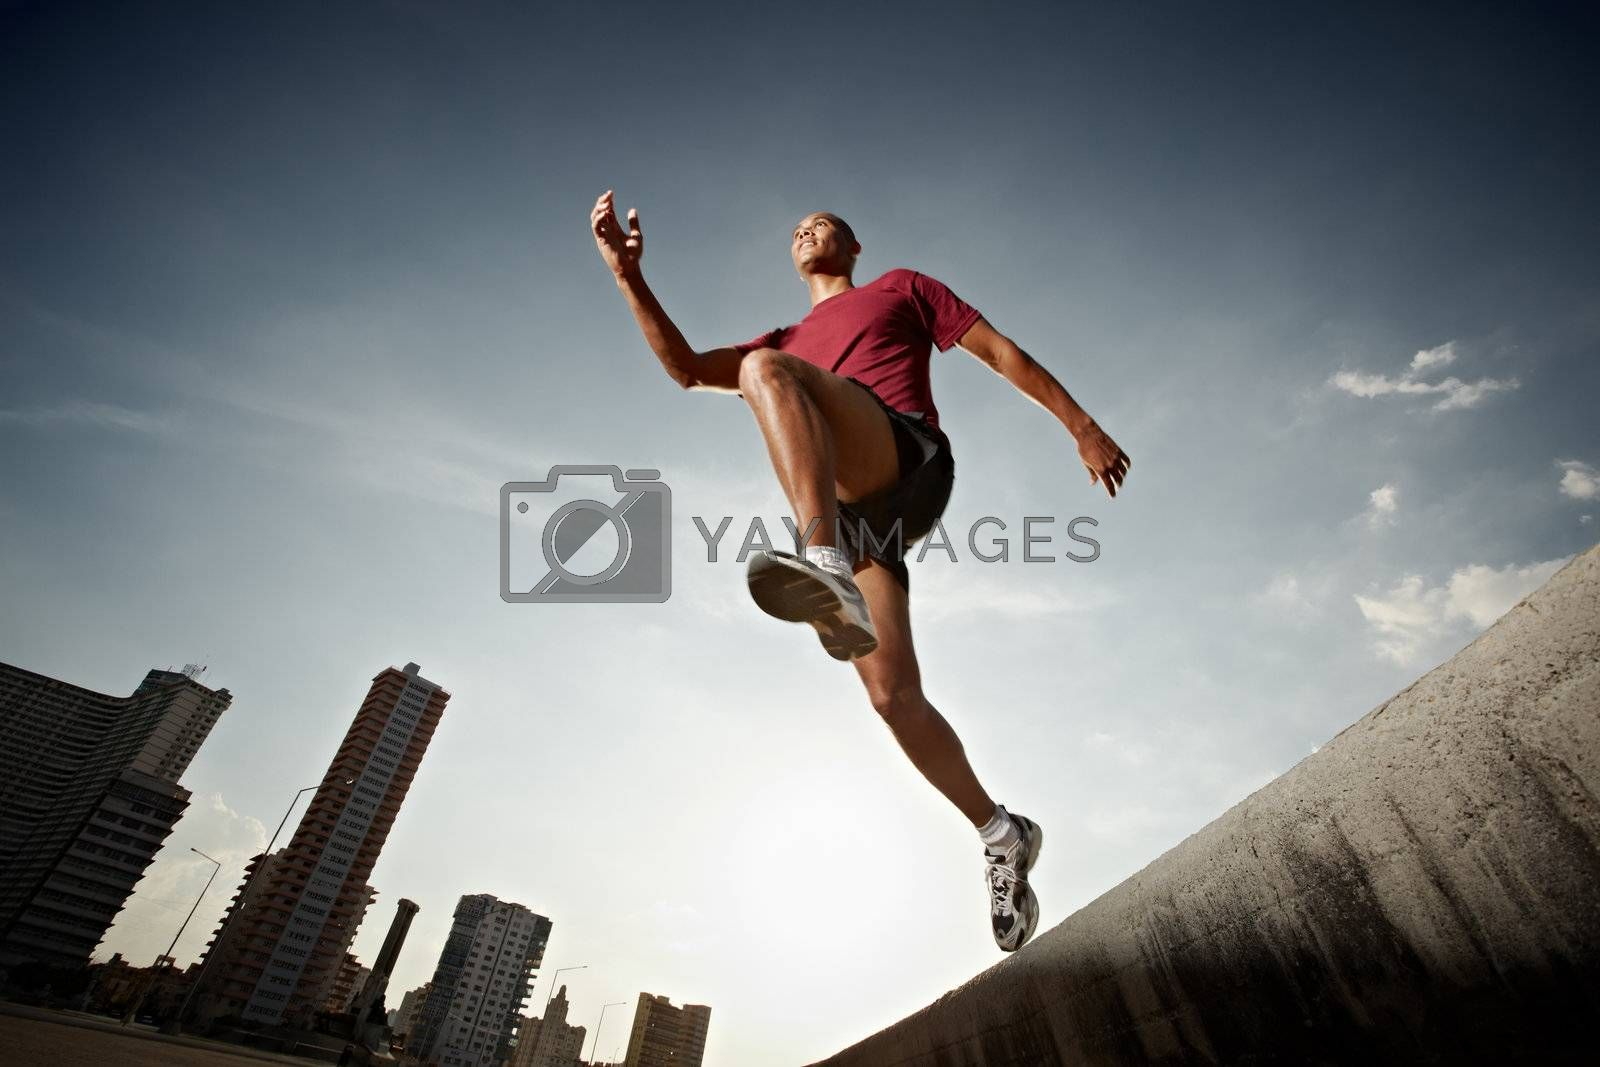 hispanic man running and jumping from a wall by diego_cervo